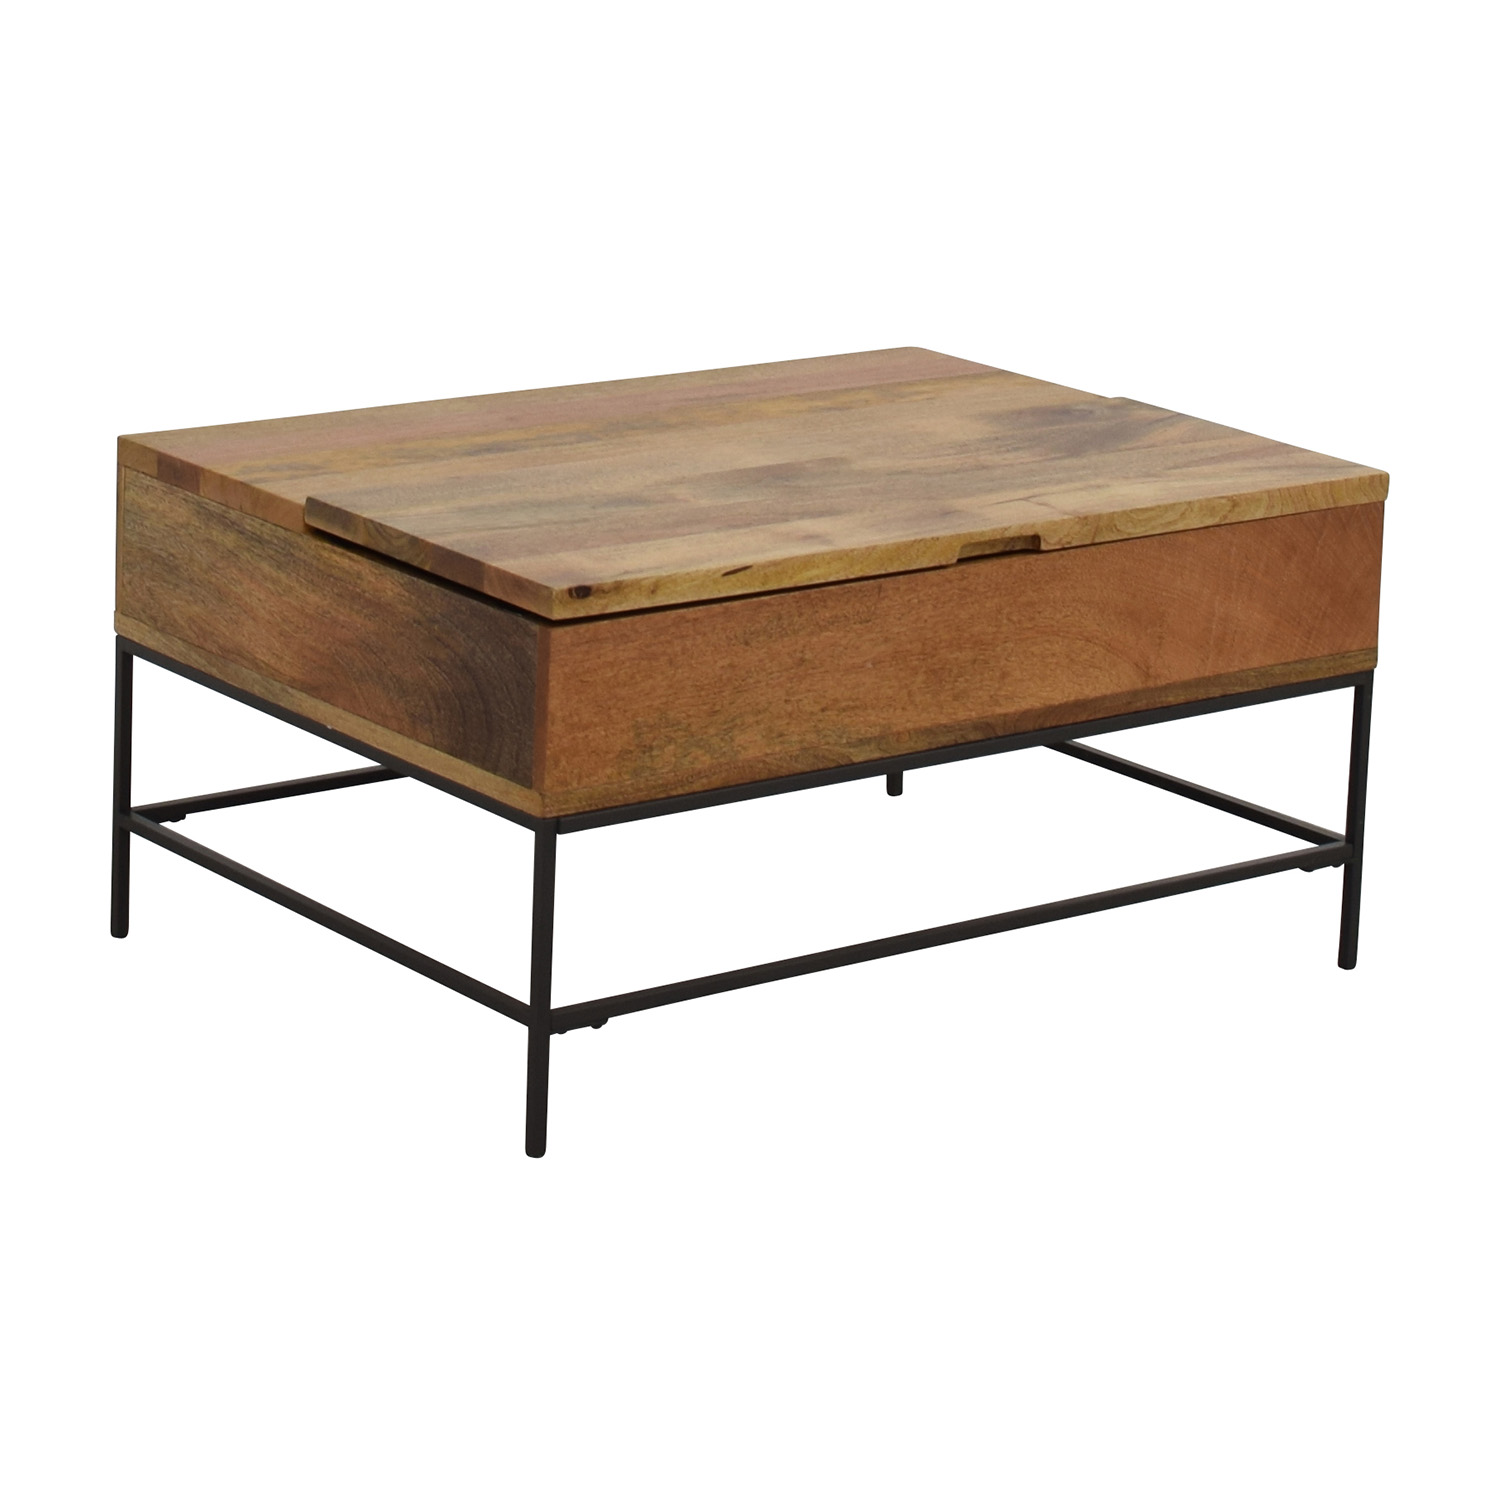 West Elm Industrial Storage Coffee Table / Tables